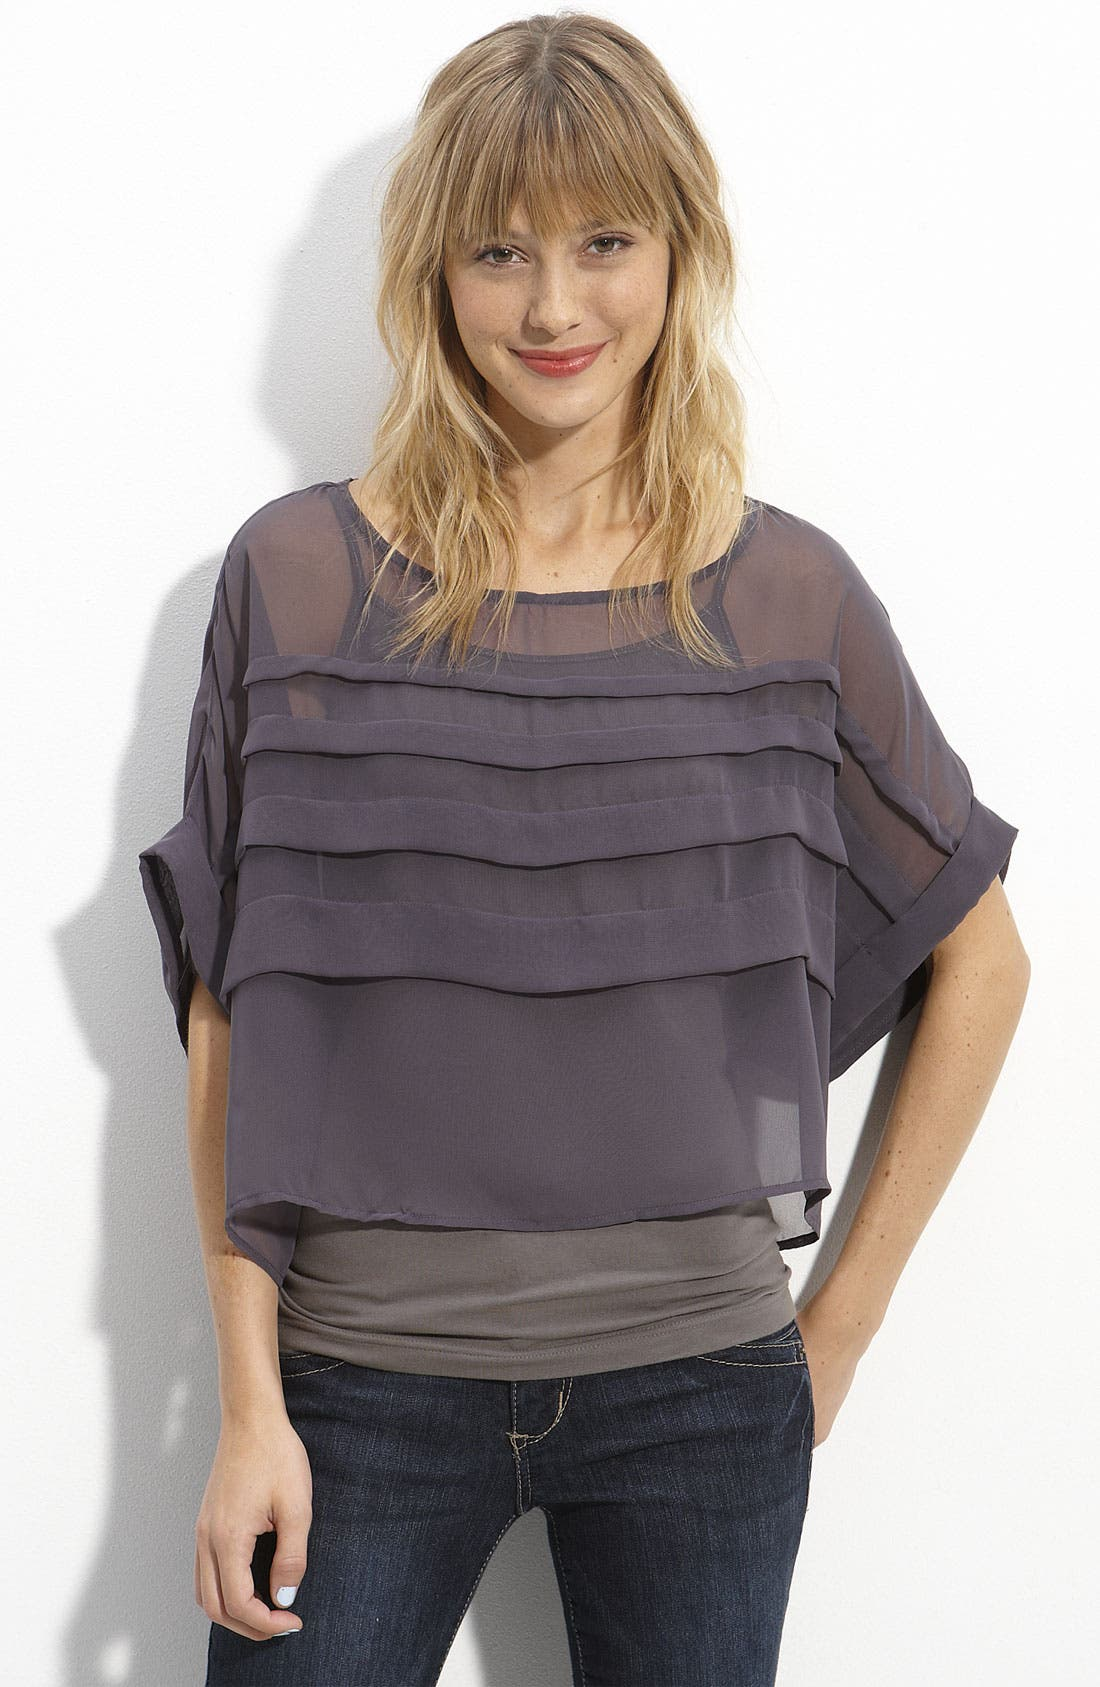 Alternate Image 1 Selected - Lush Tiered Sheer Chiffon Cropped Top (Juniors)